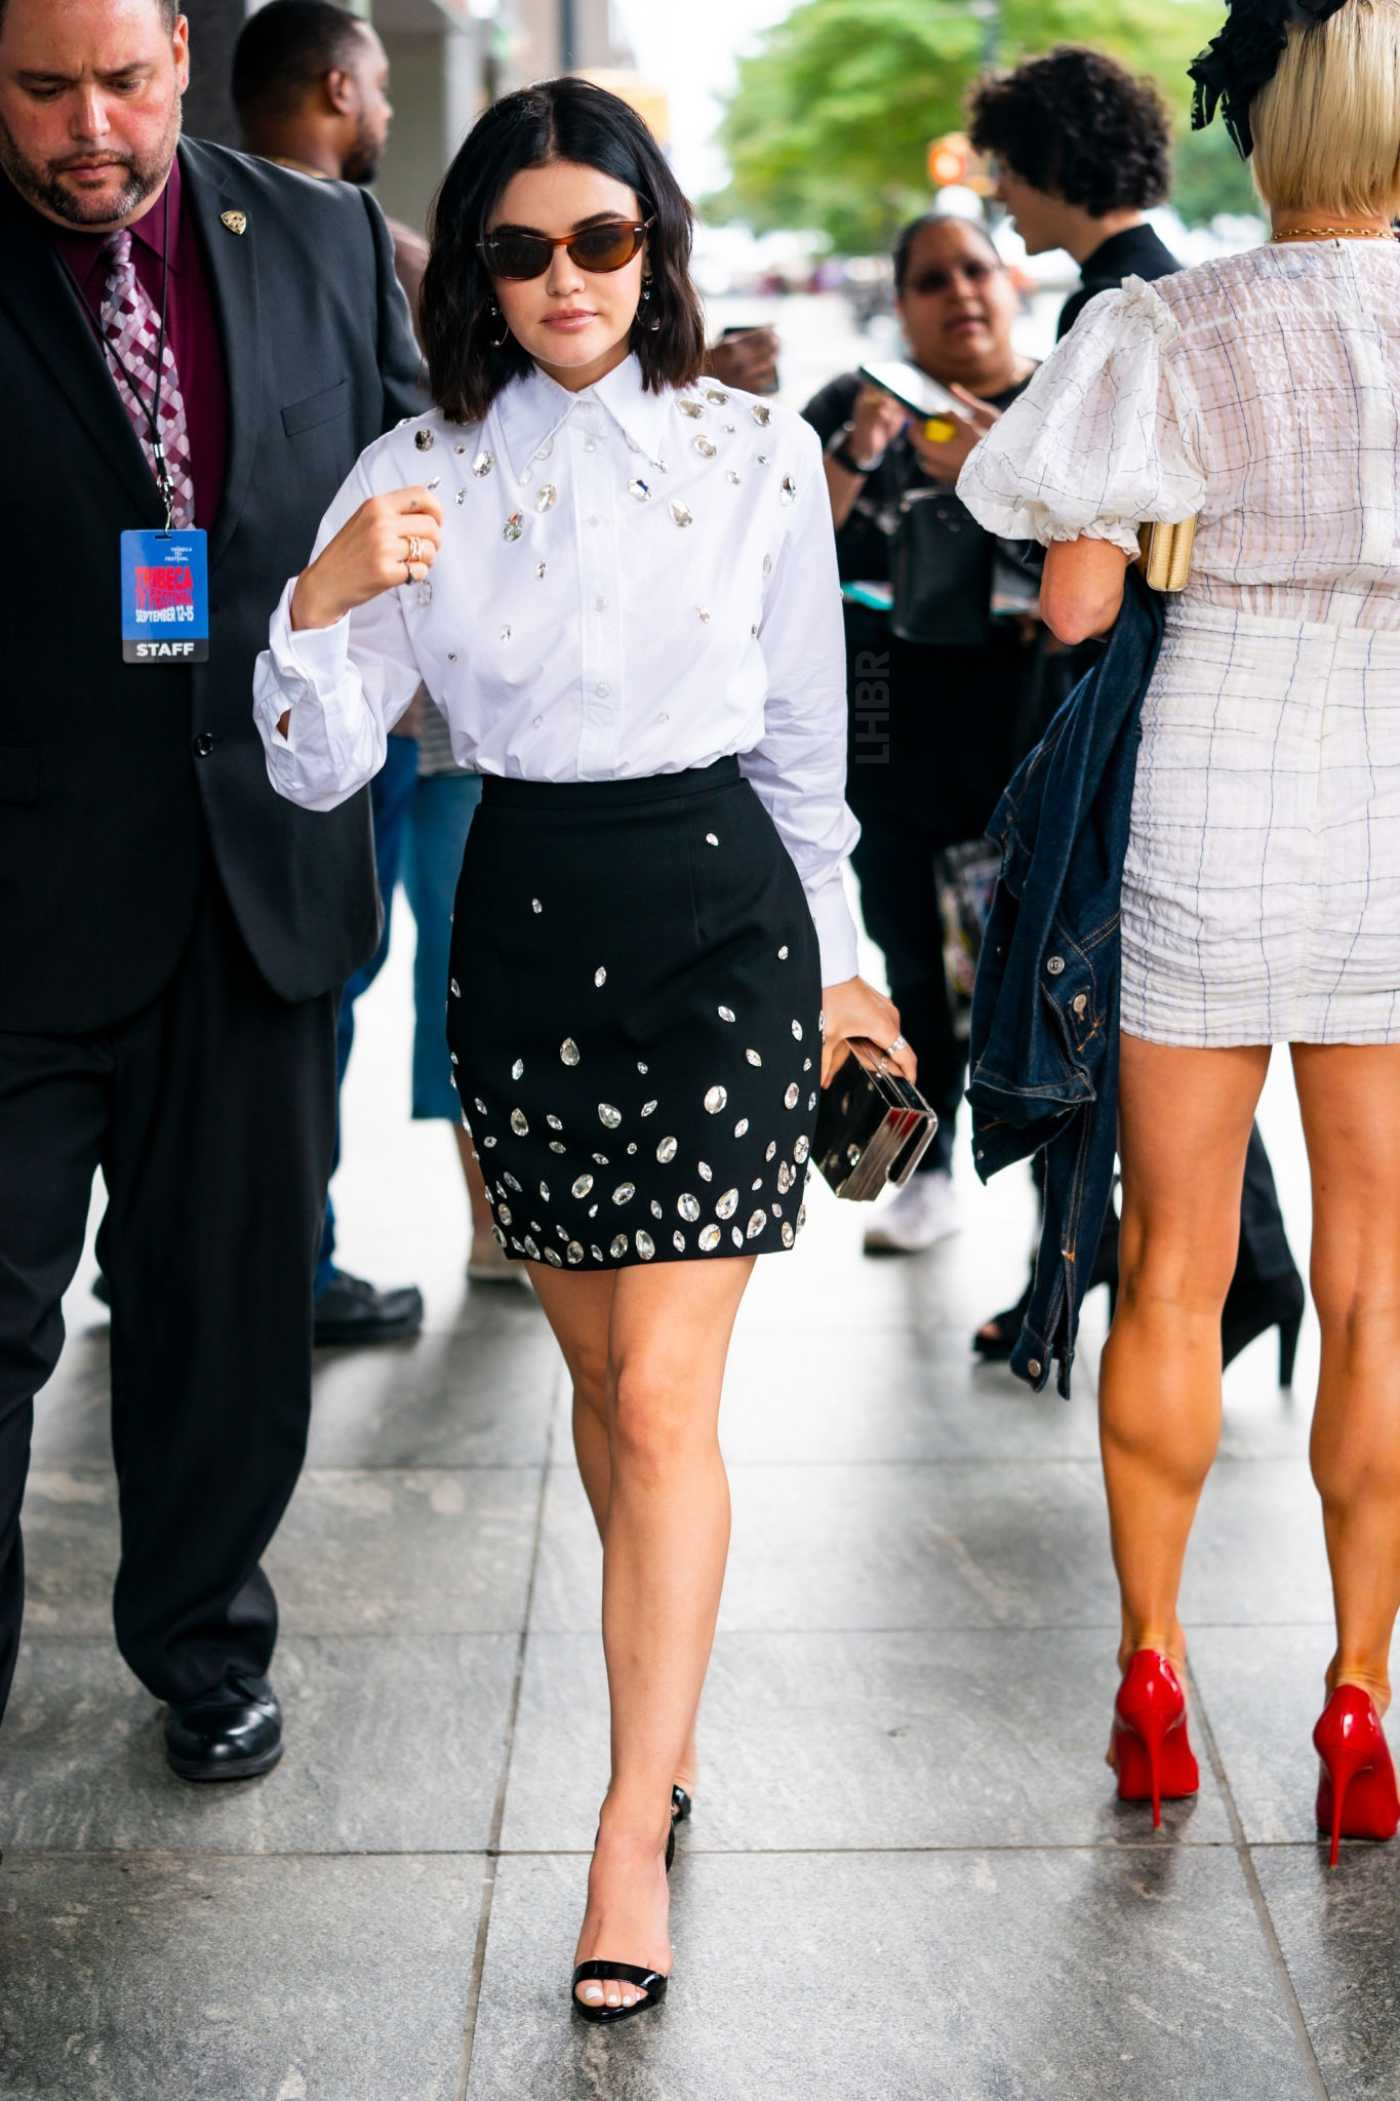 Lucy Hale in a White Blouse Was Seen Out in New York City 09/14/2019